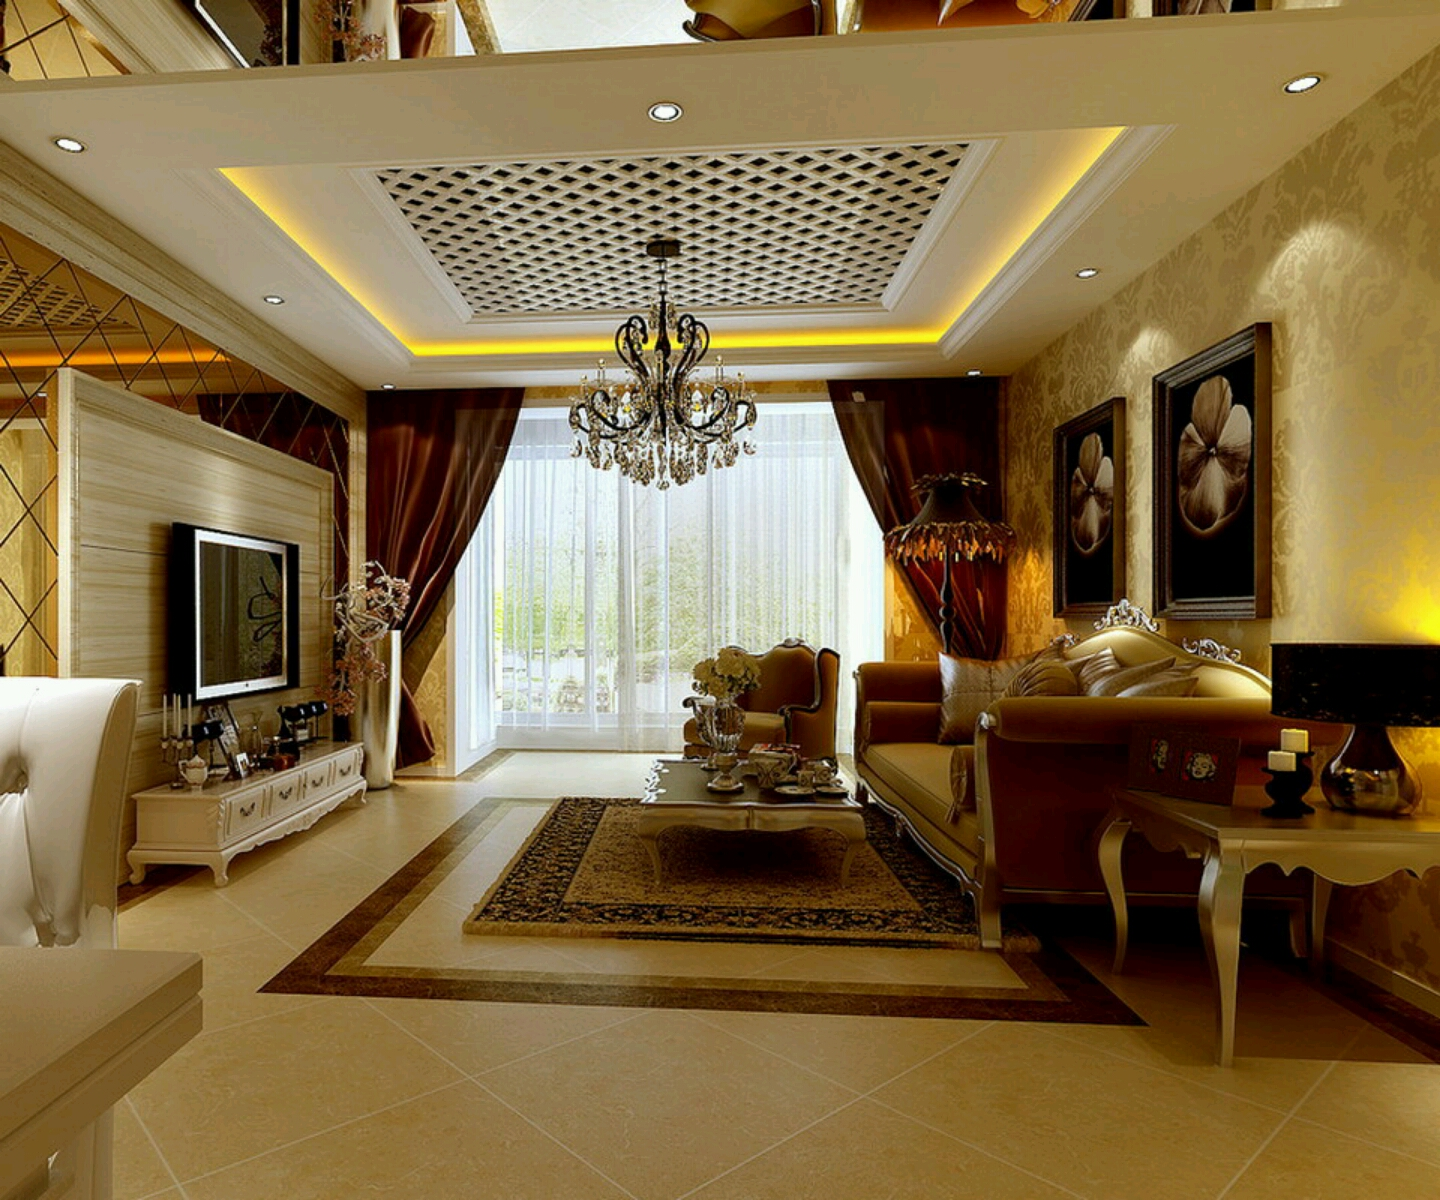 New home designs latest luxury homes interior decoration for Luxury house plans with photos of interior